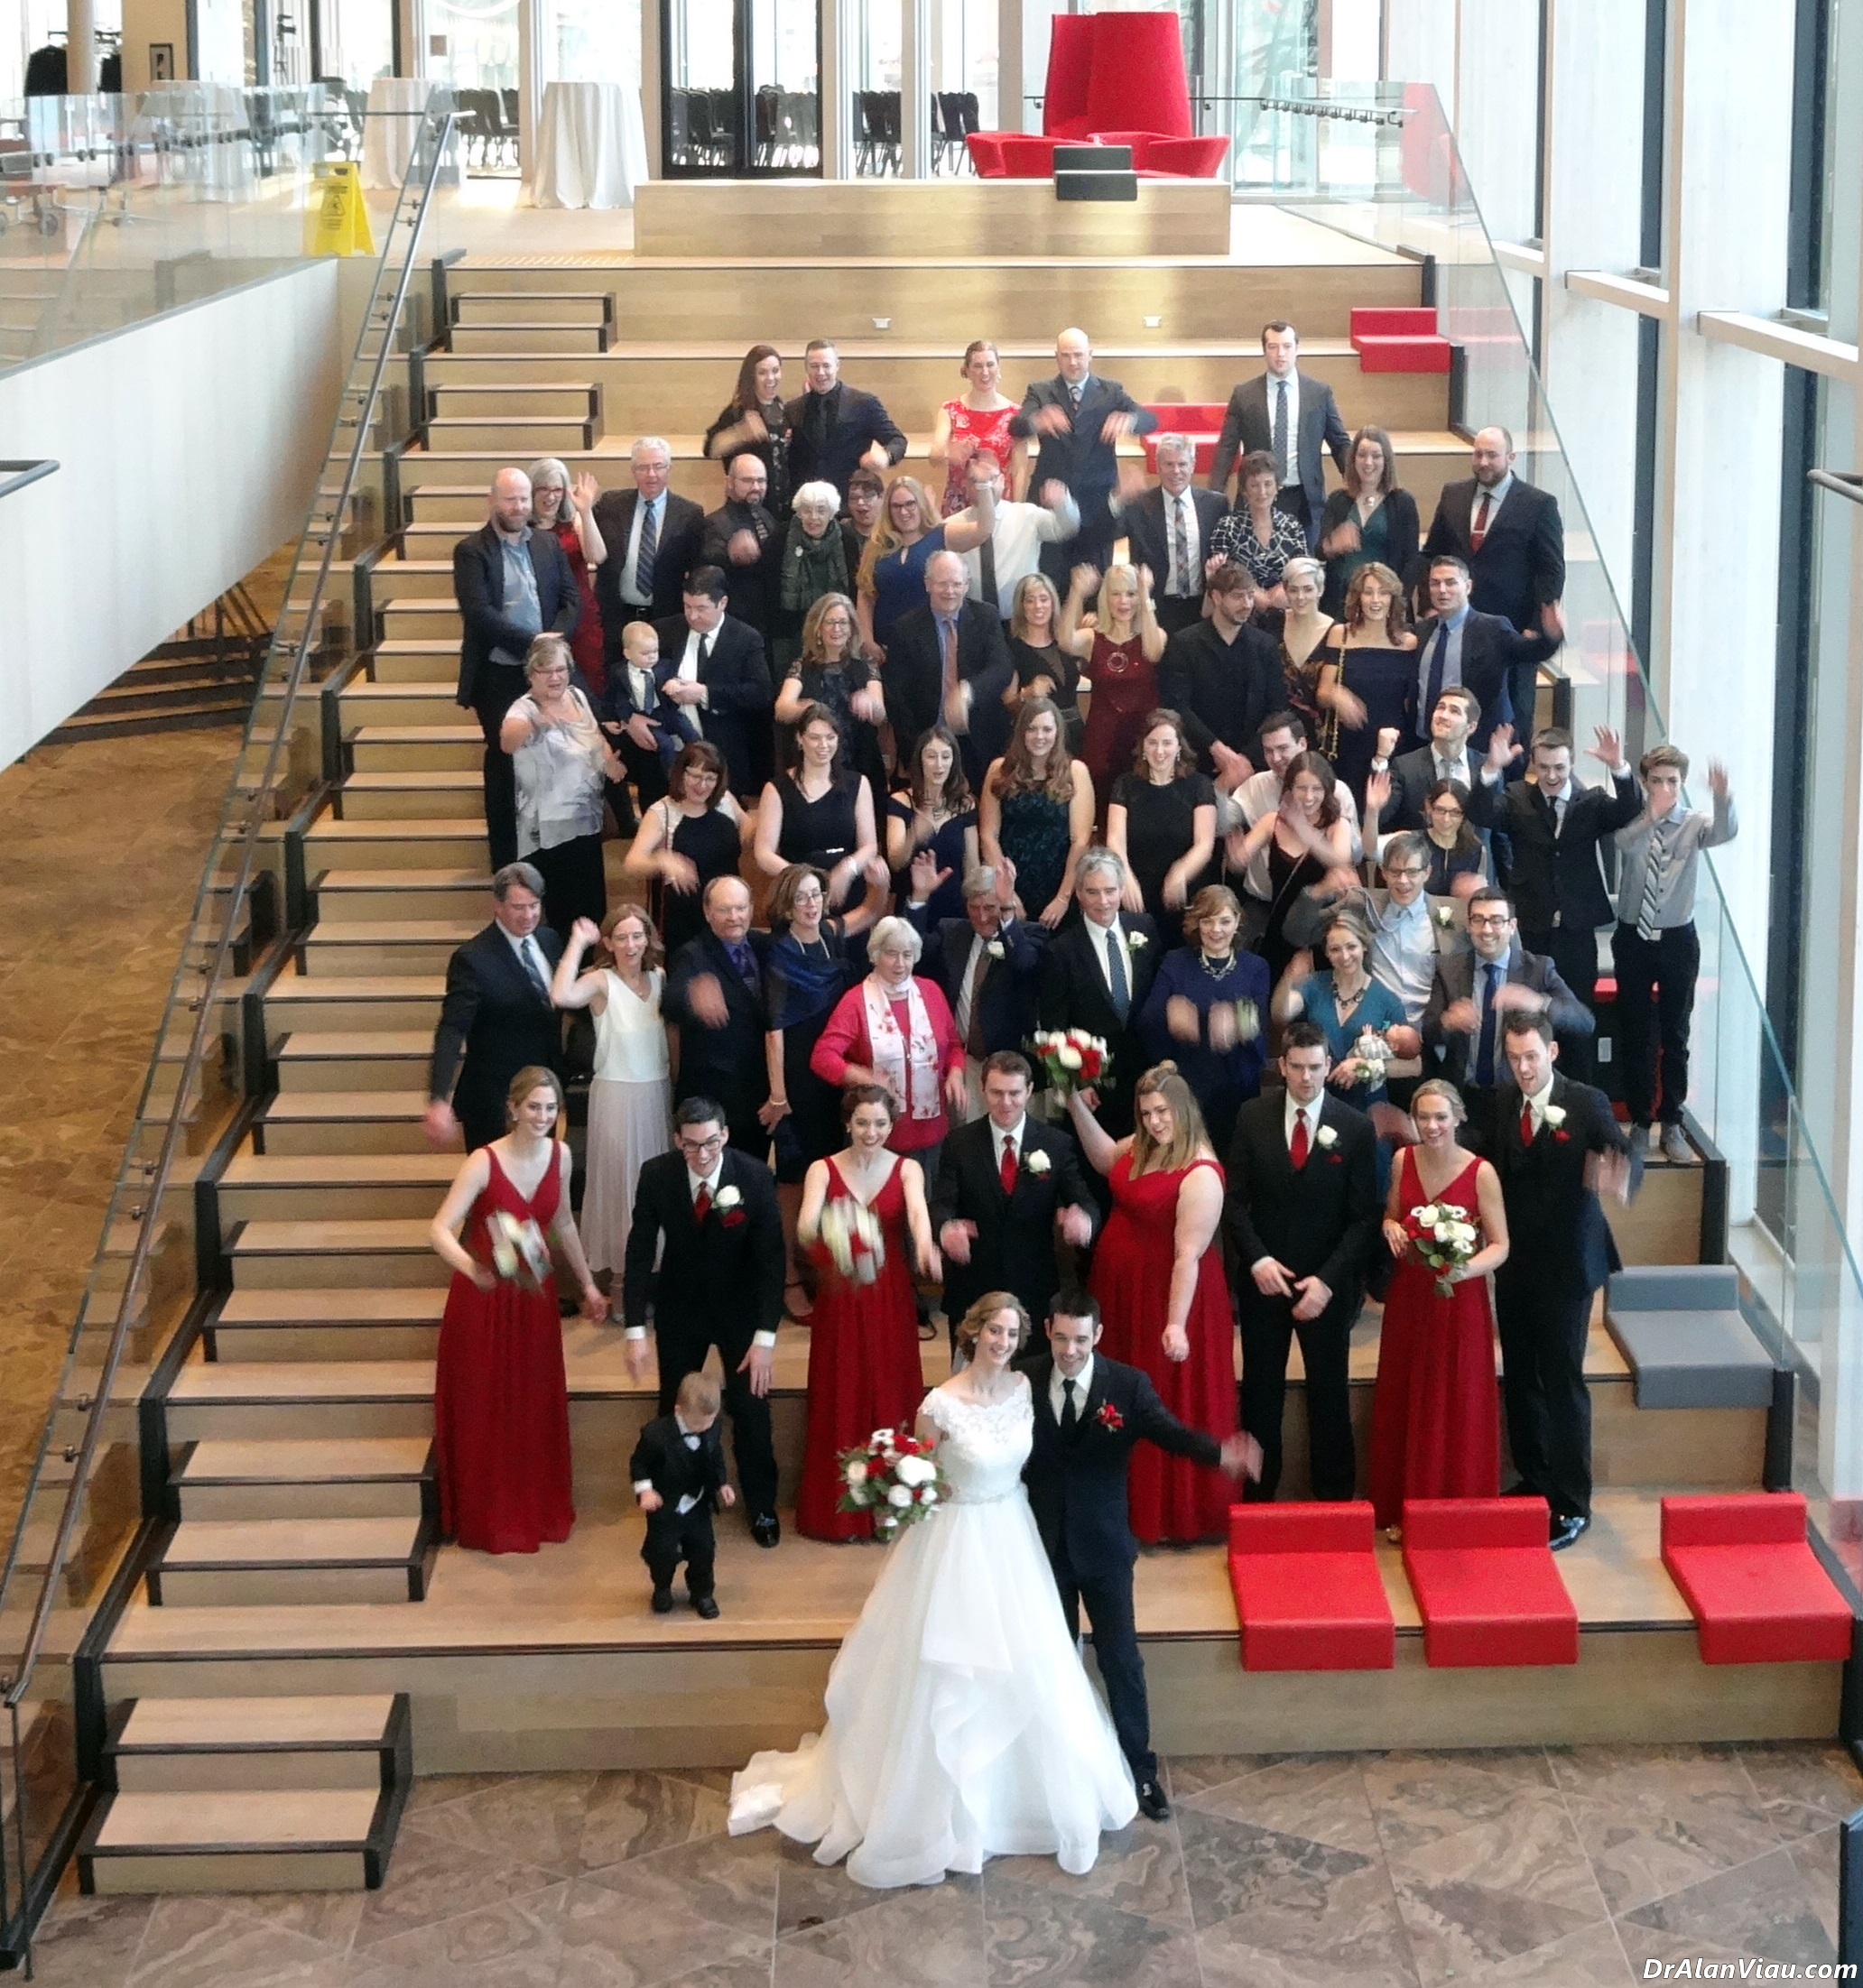 Love the New National Arts Centre (NAC) Wedding Spaces